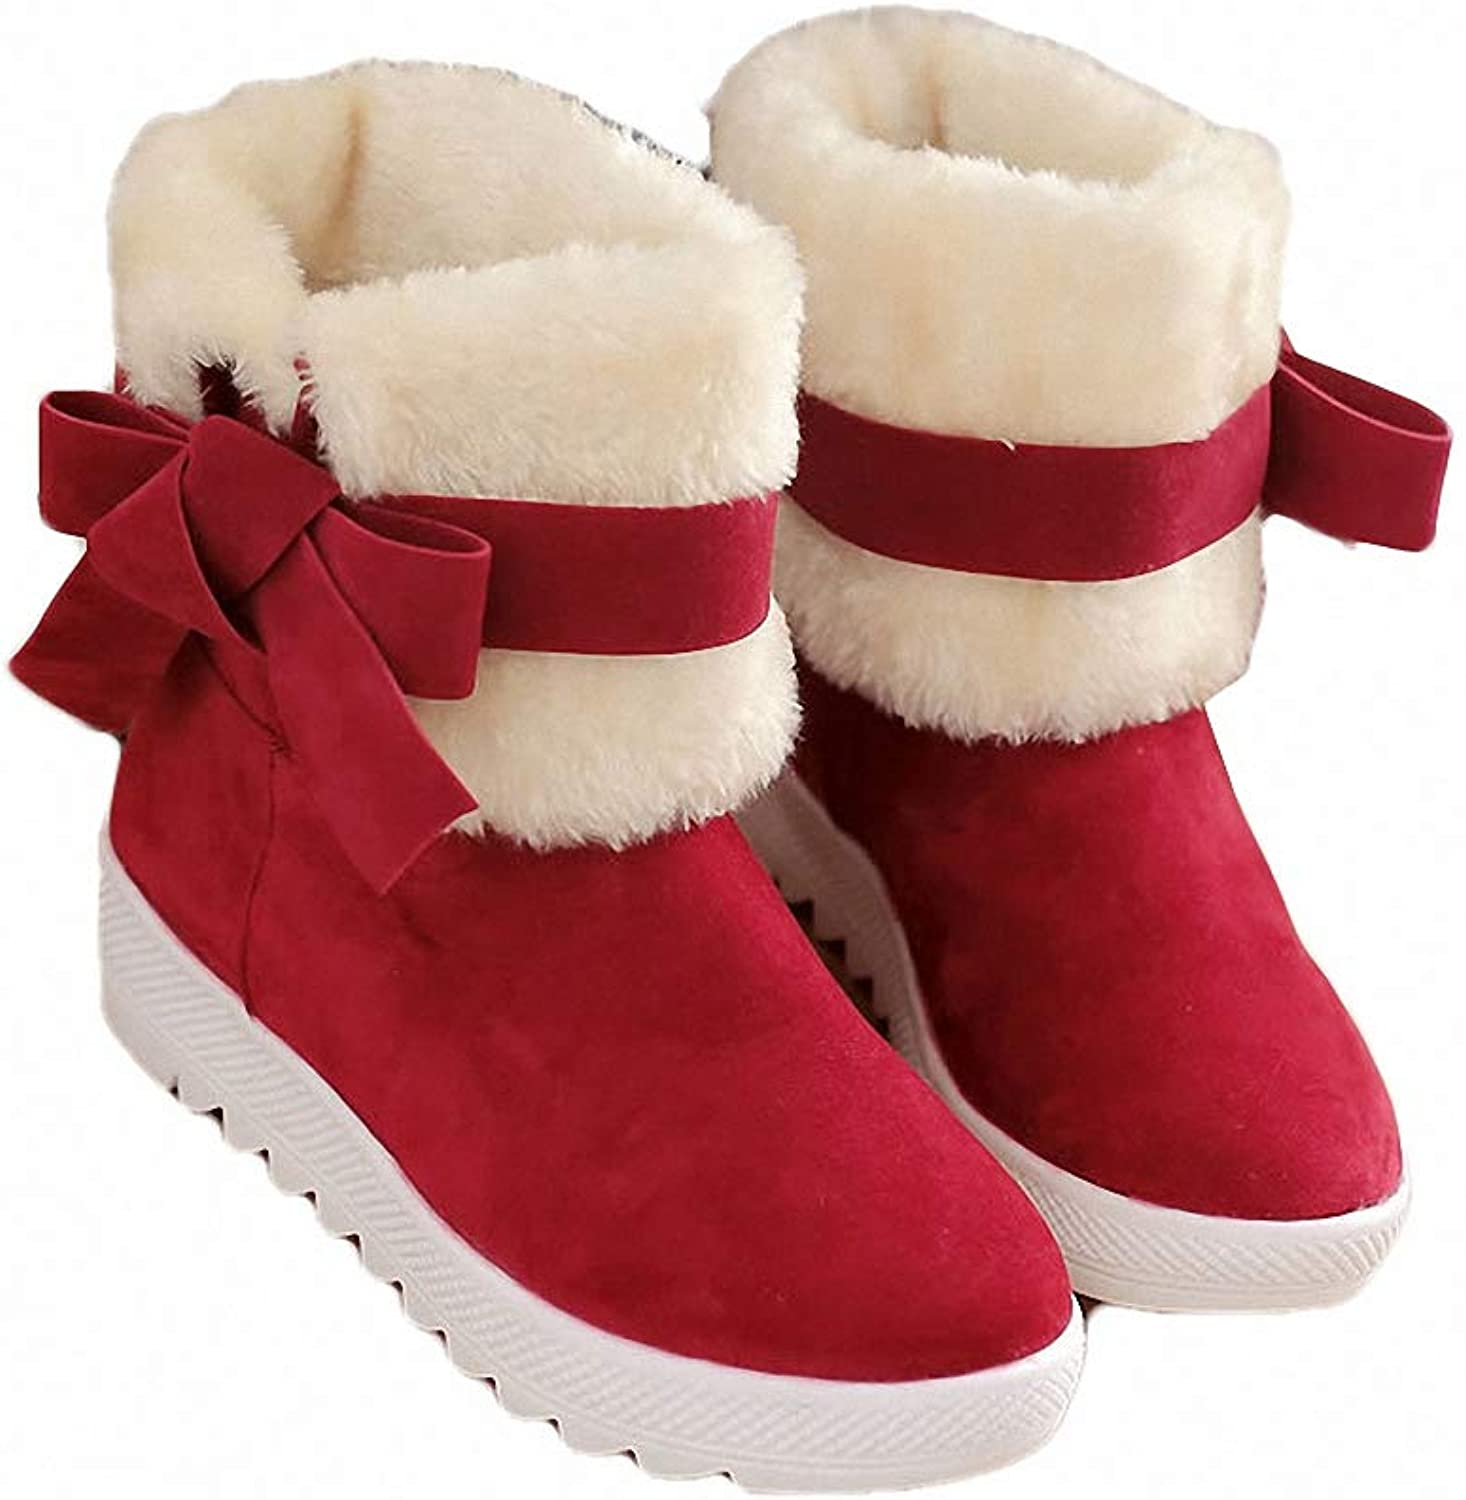 Kyle Walsh Pa Girls Winter Boots Round Toe Bow Knot Cute Ankle Booties Non-Slip Flat Boots for Women